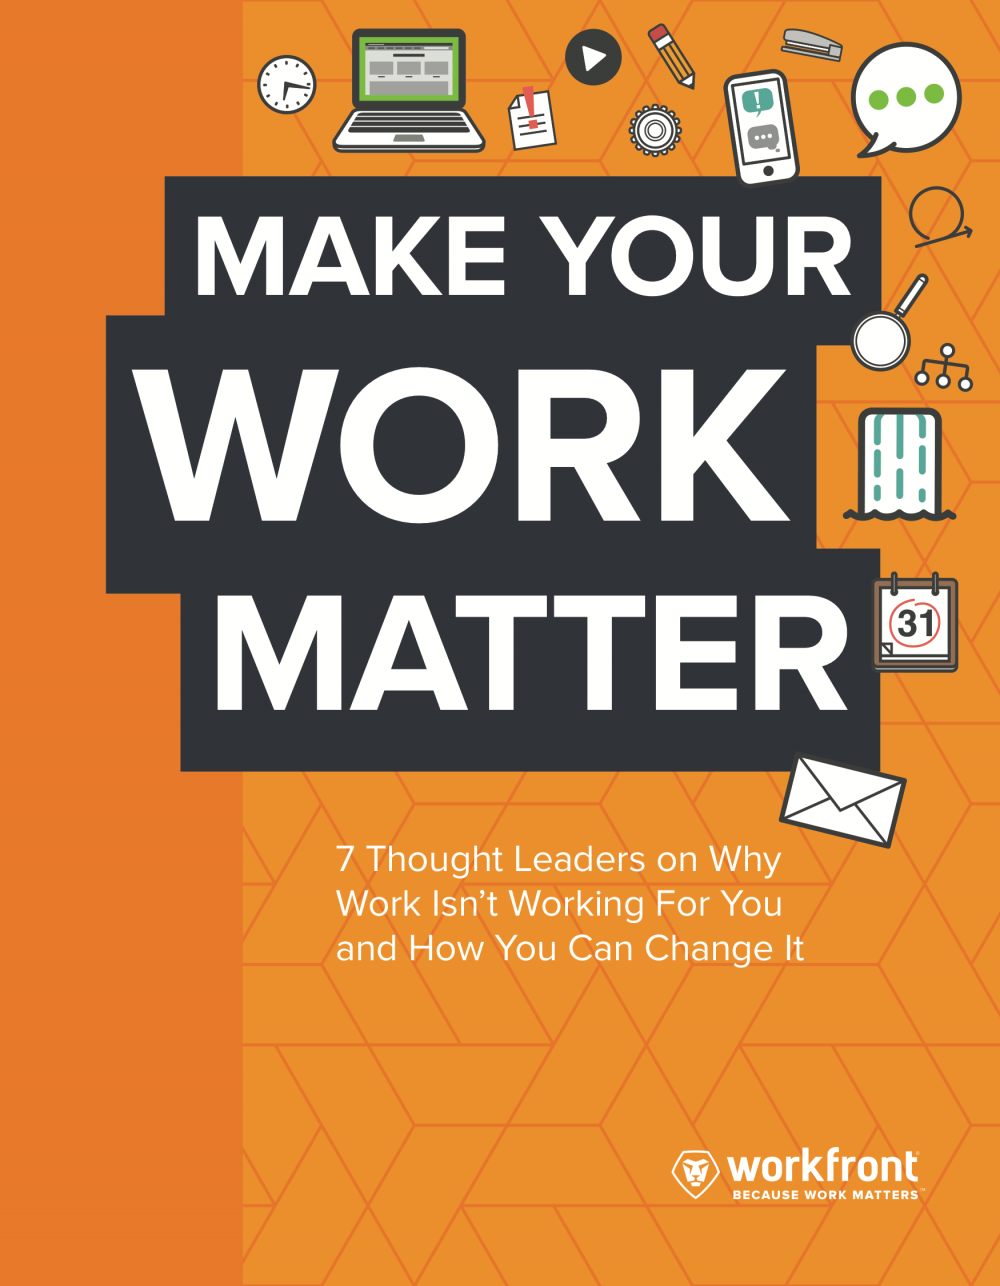 Make Your Work Matter | Workfront